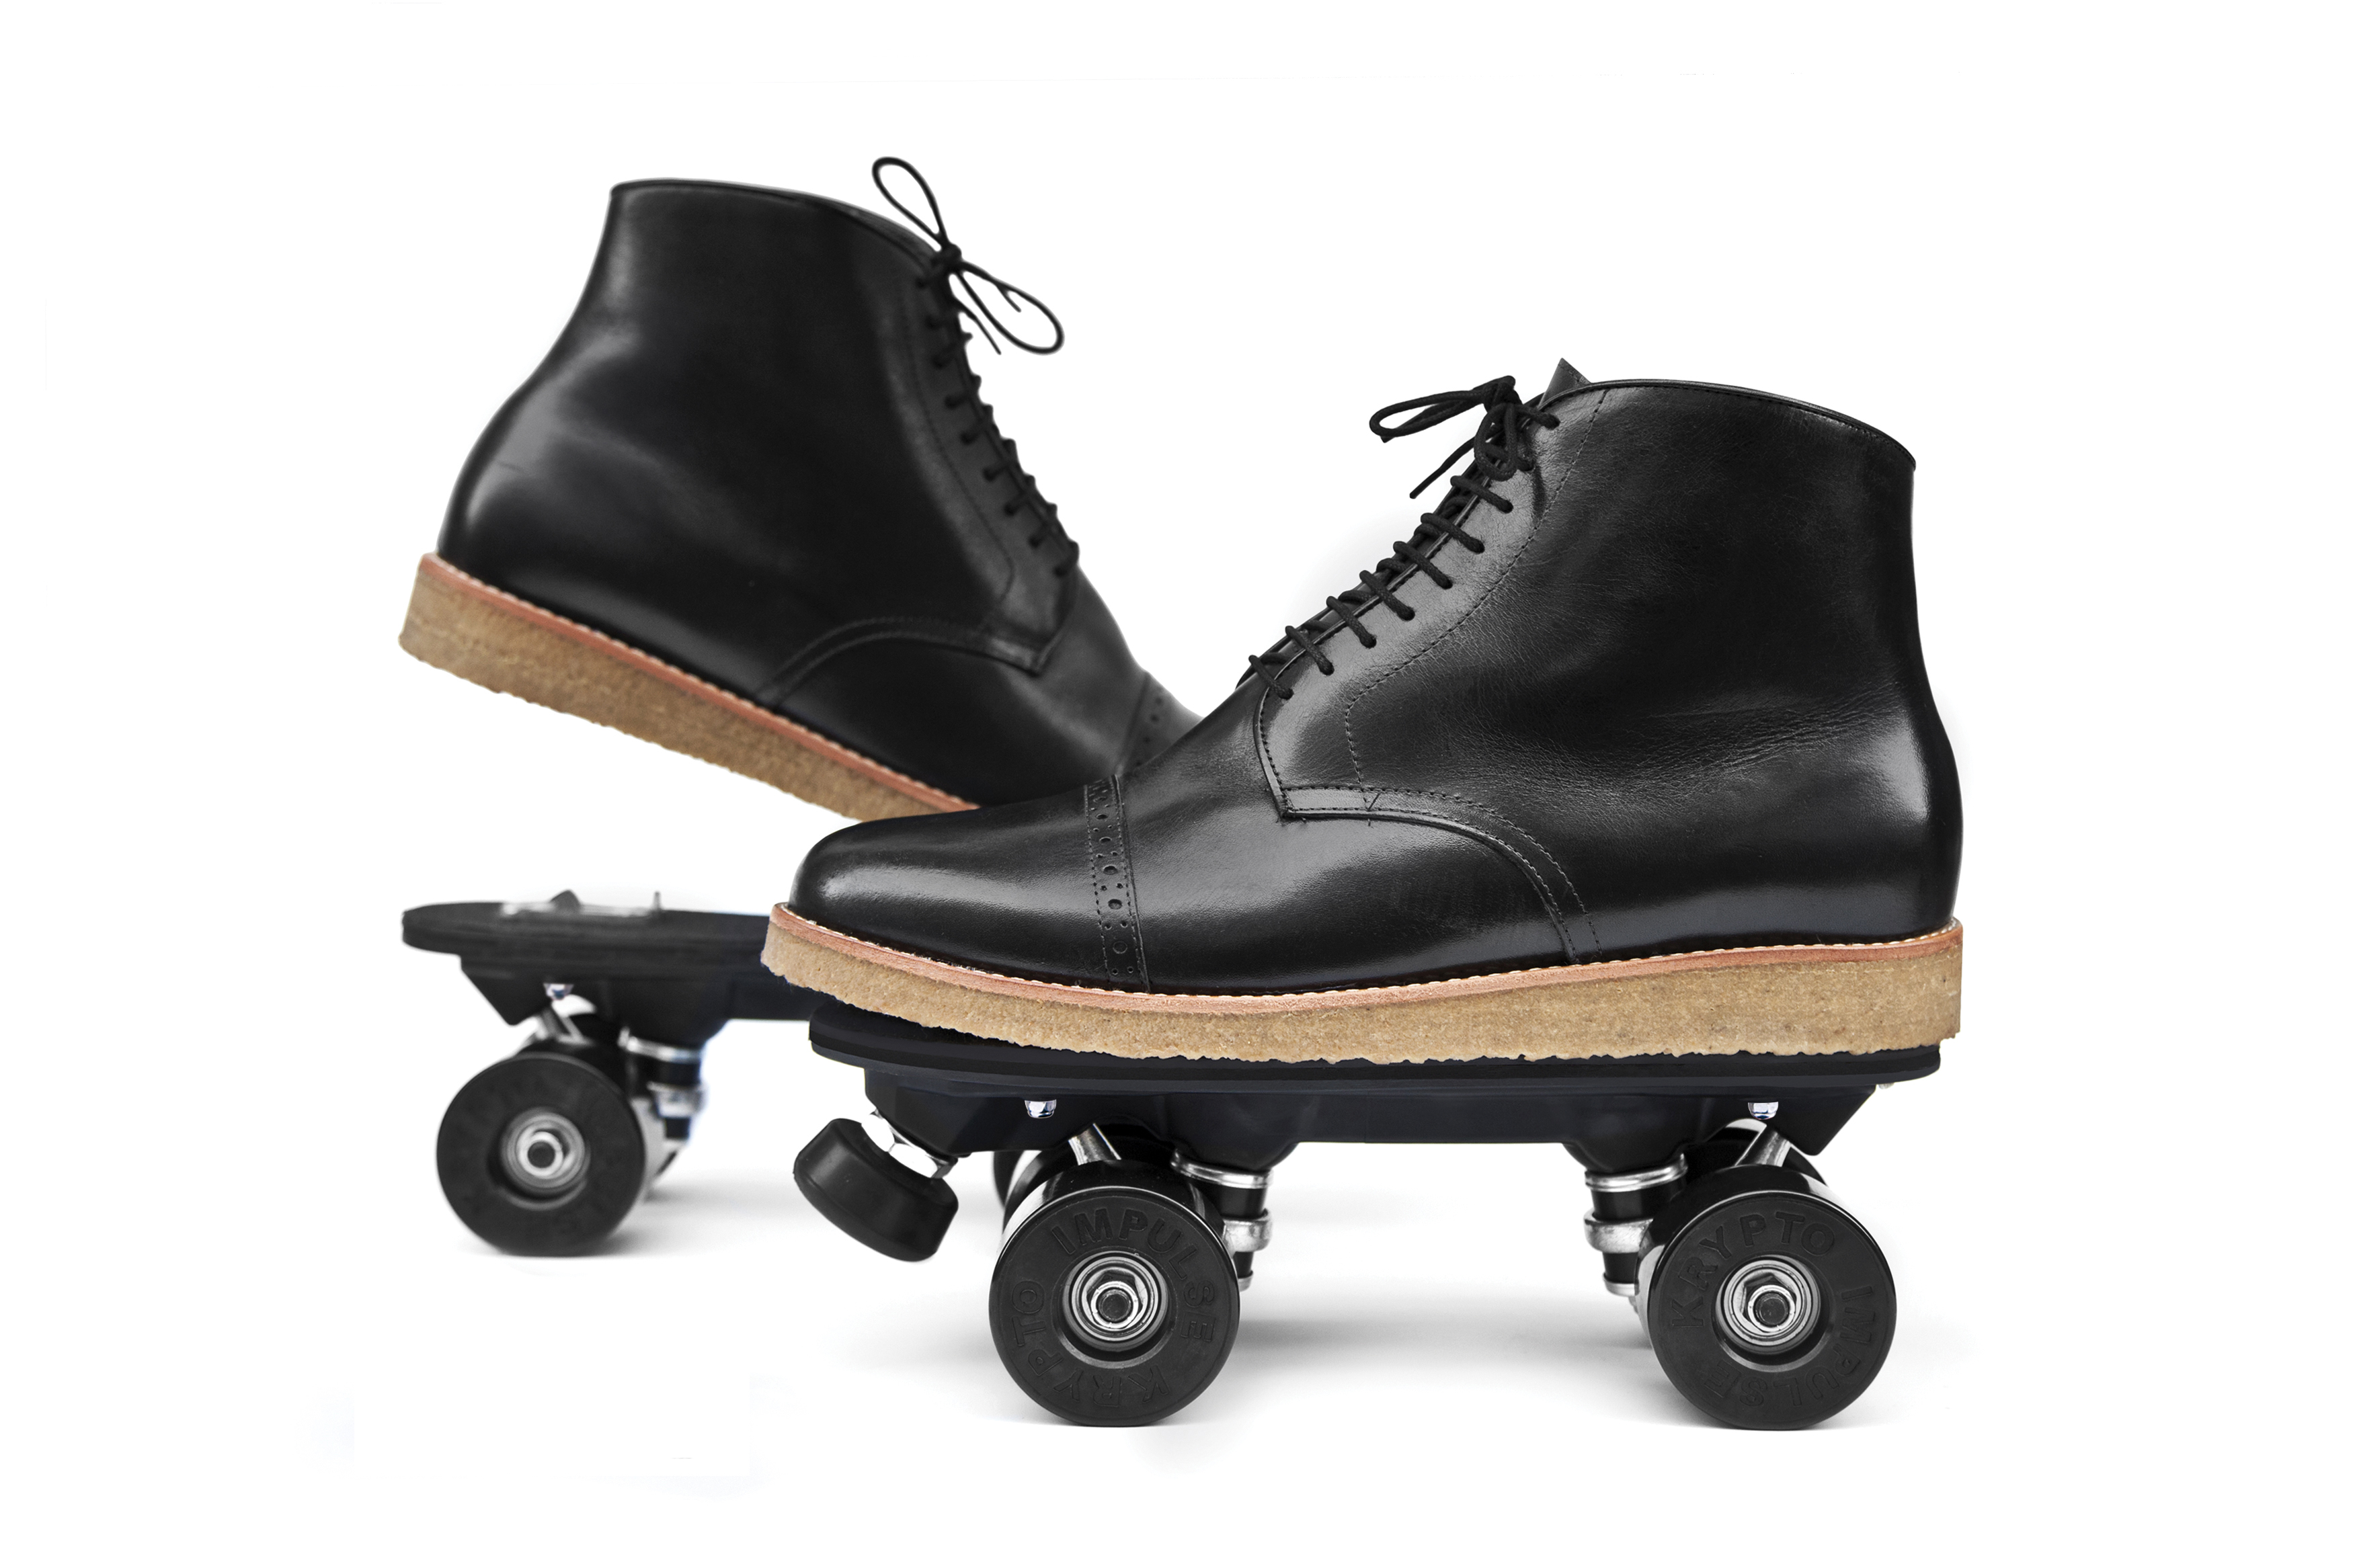 Black Pantanal Model, dress shoes  Clip on Skates adapted with the On wheelz systèm